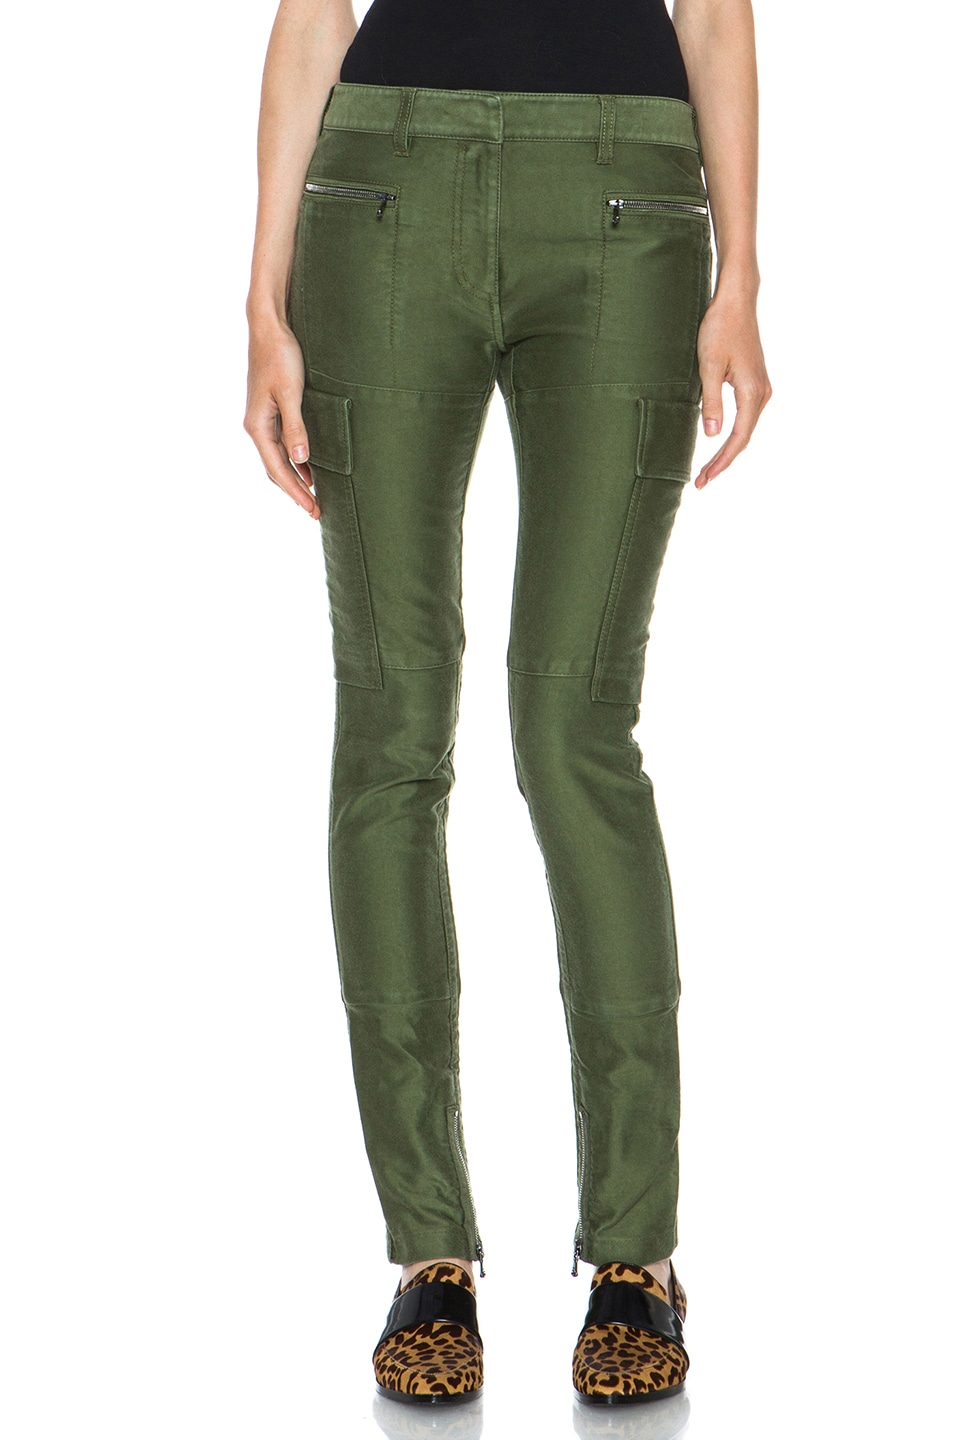 Image 1 of 3.1 phillip lim Skinny Cargo Cotton Pant in Army Green